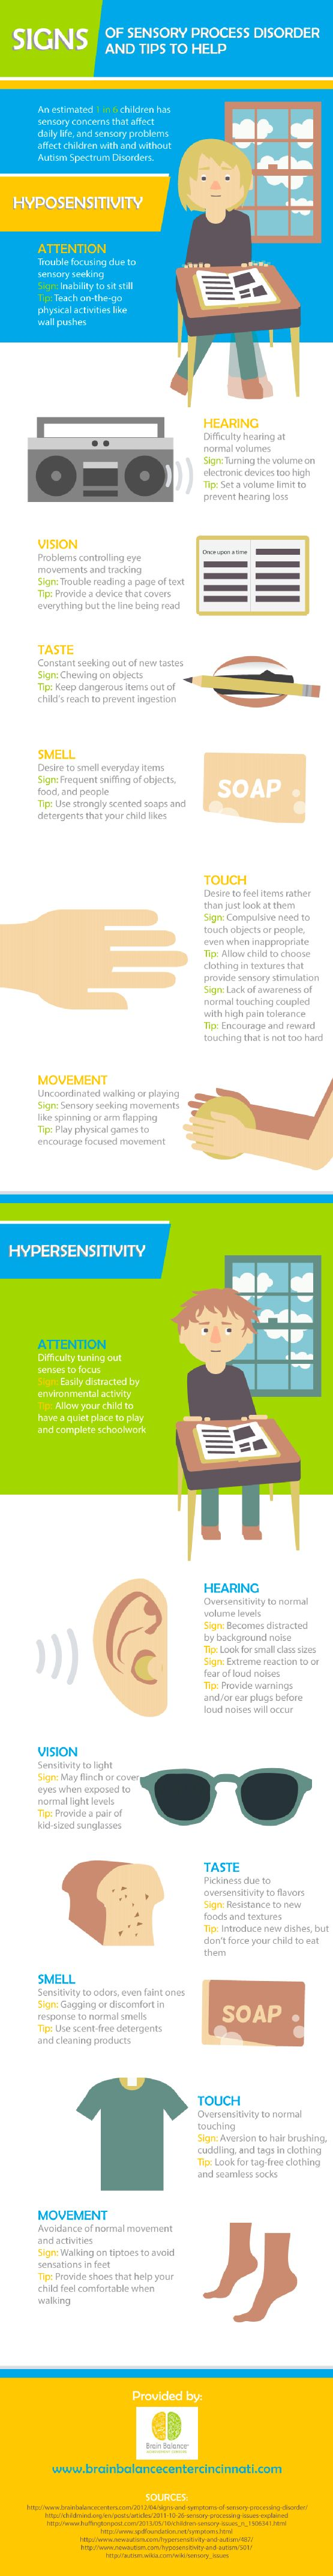 Signs of Sensory Process Disorder and Tips to Help (Infograph)